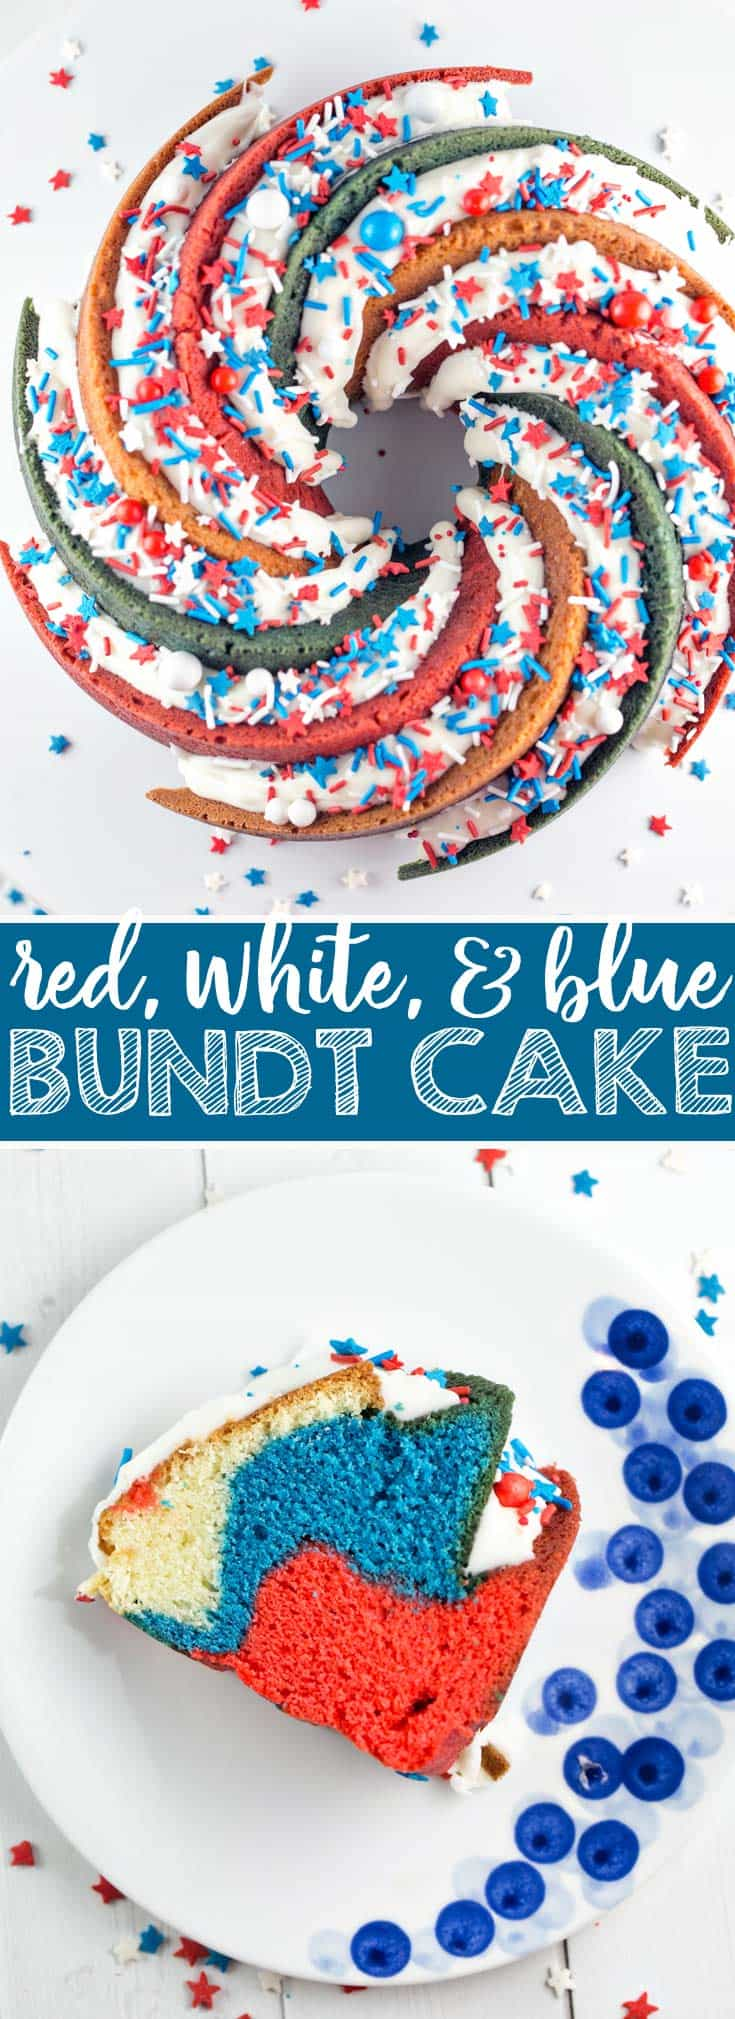 How To Decorate A Bundt Cake